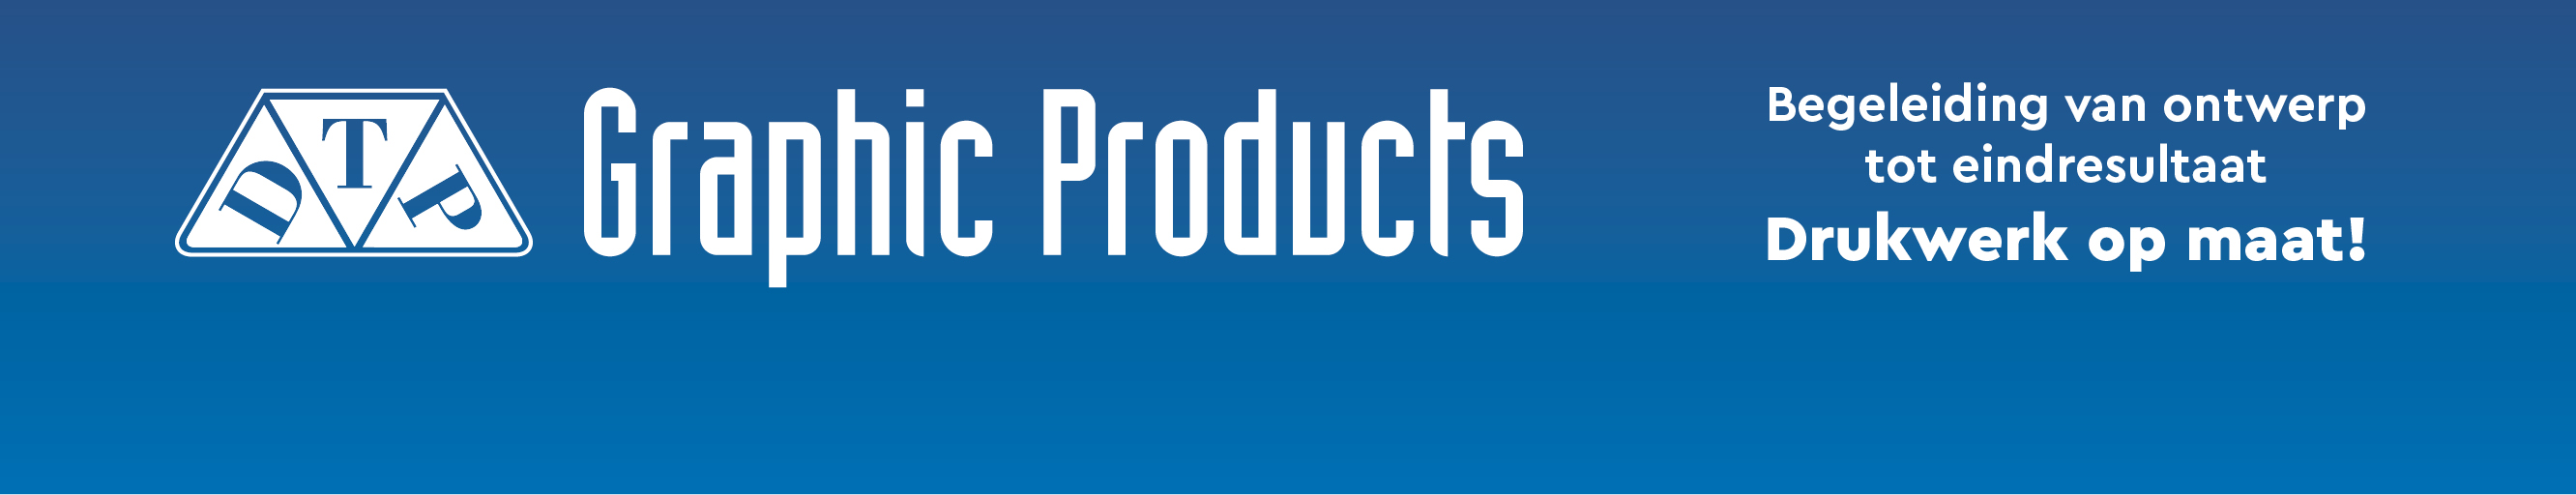 DTP Graphic Products logo